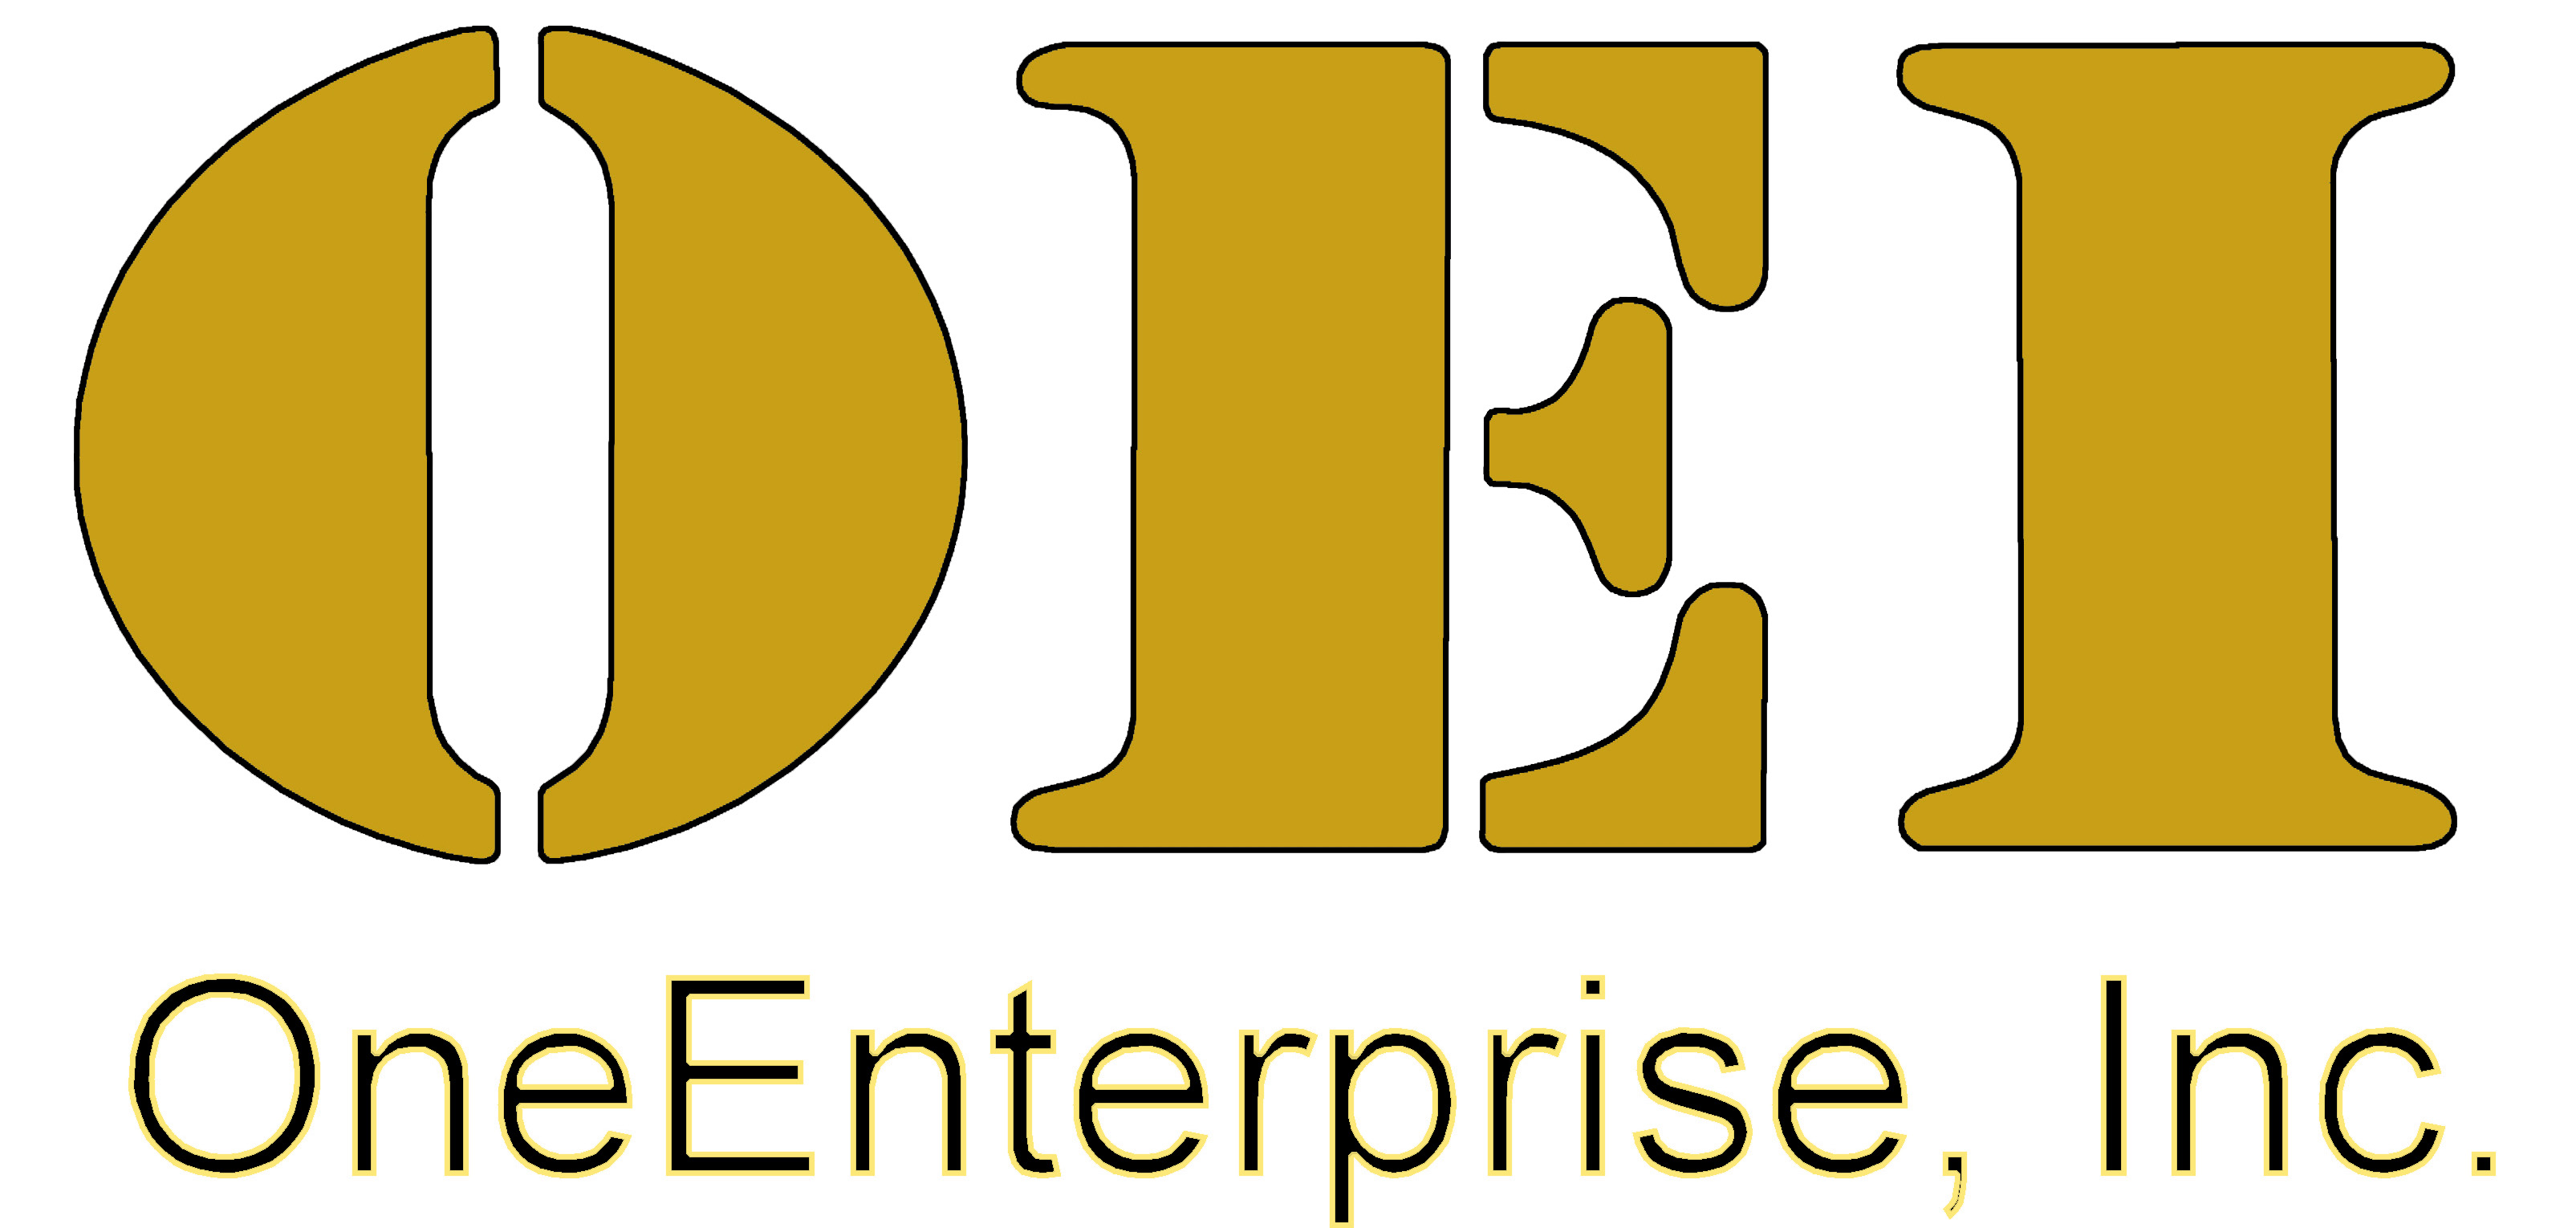 OneEnterprise, Inc.